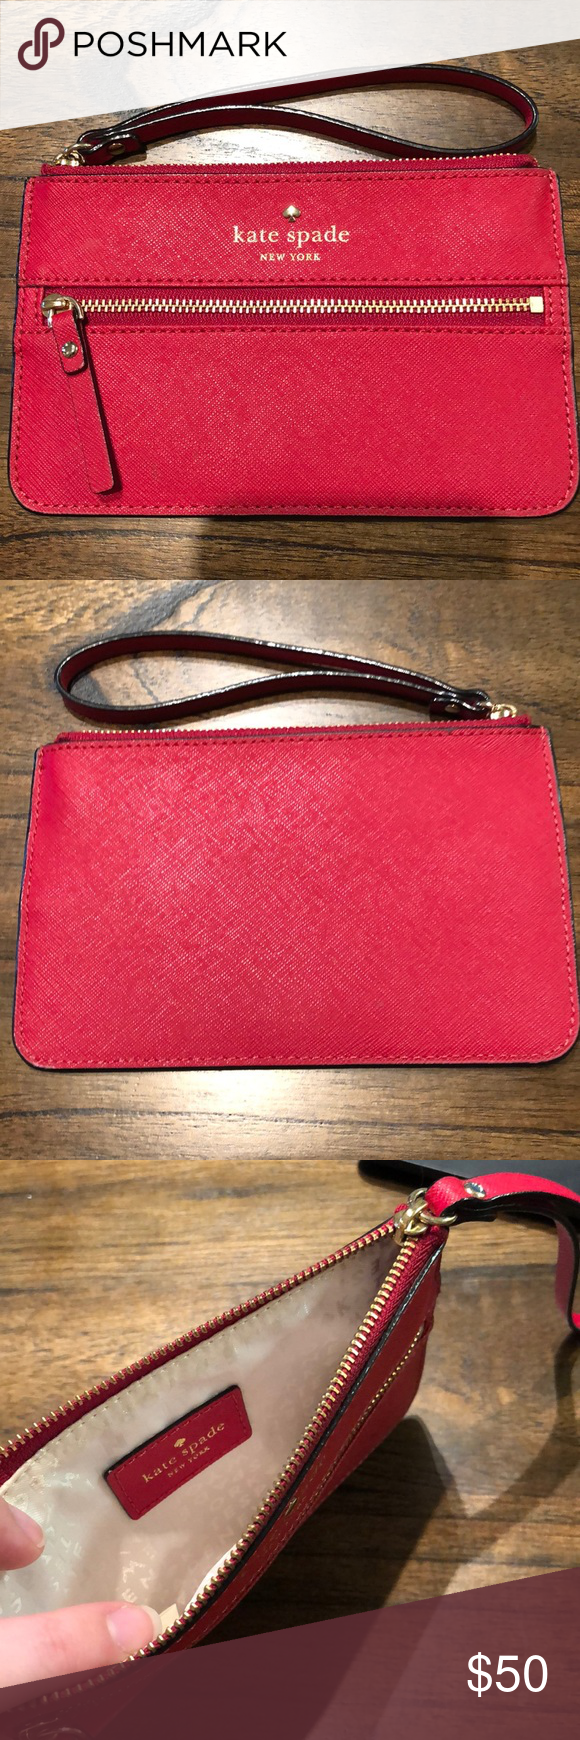 Kate Spade Wristlet Barely Used Red Wristlet Lays Flat